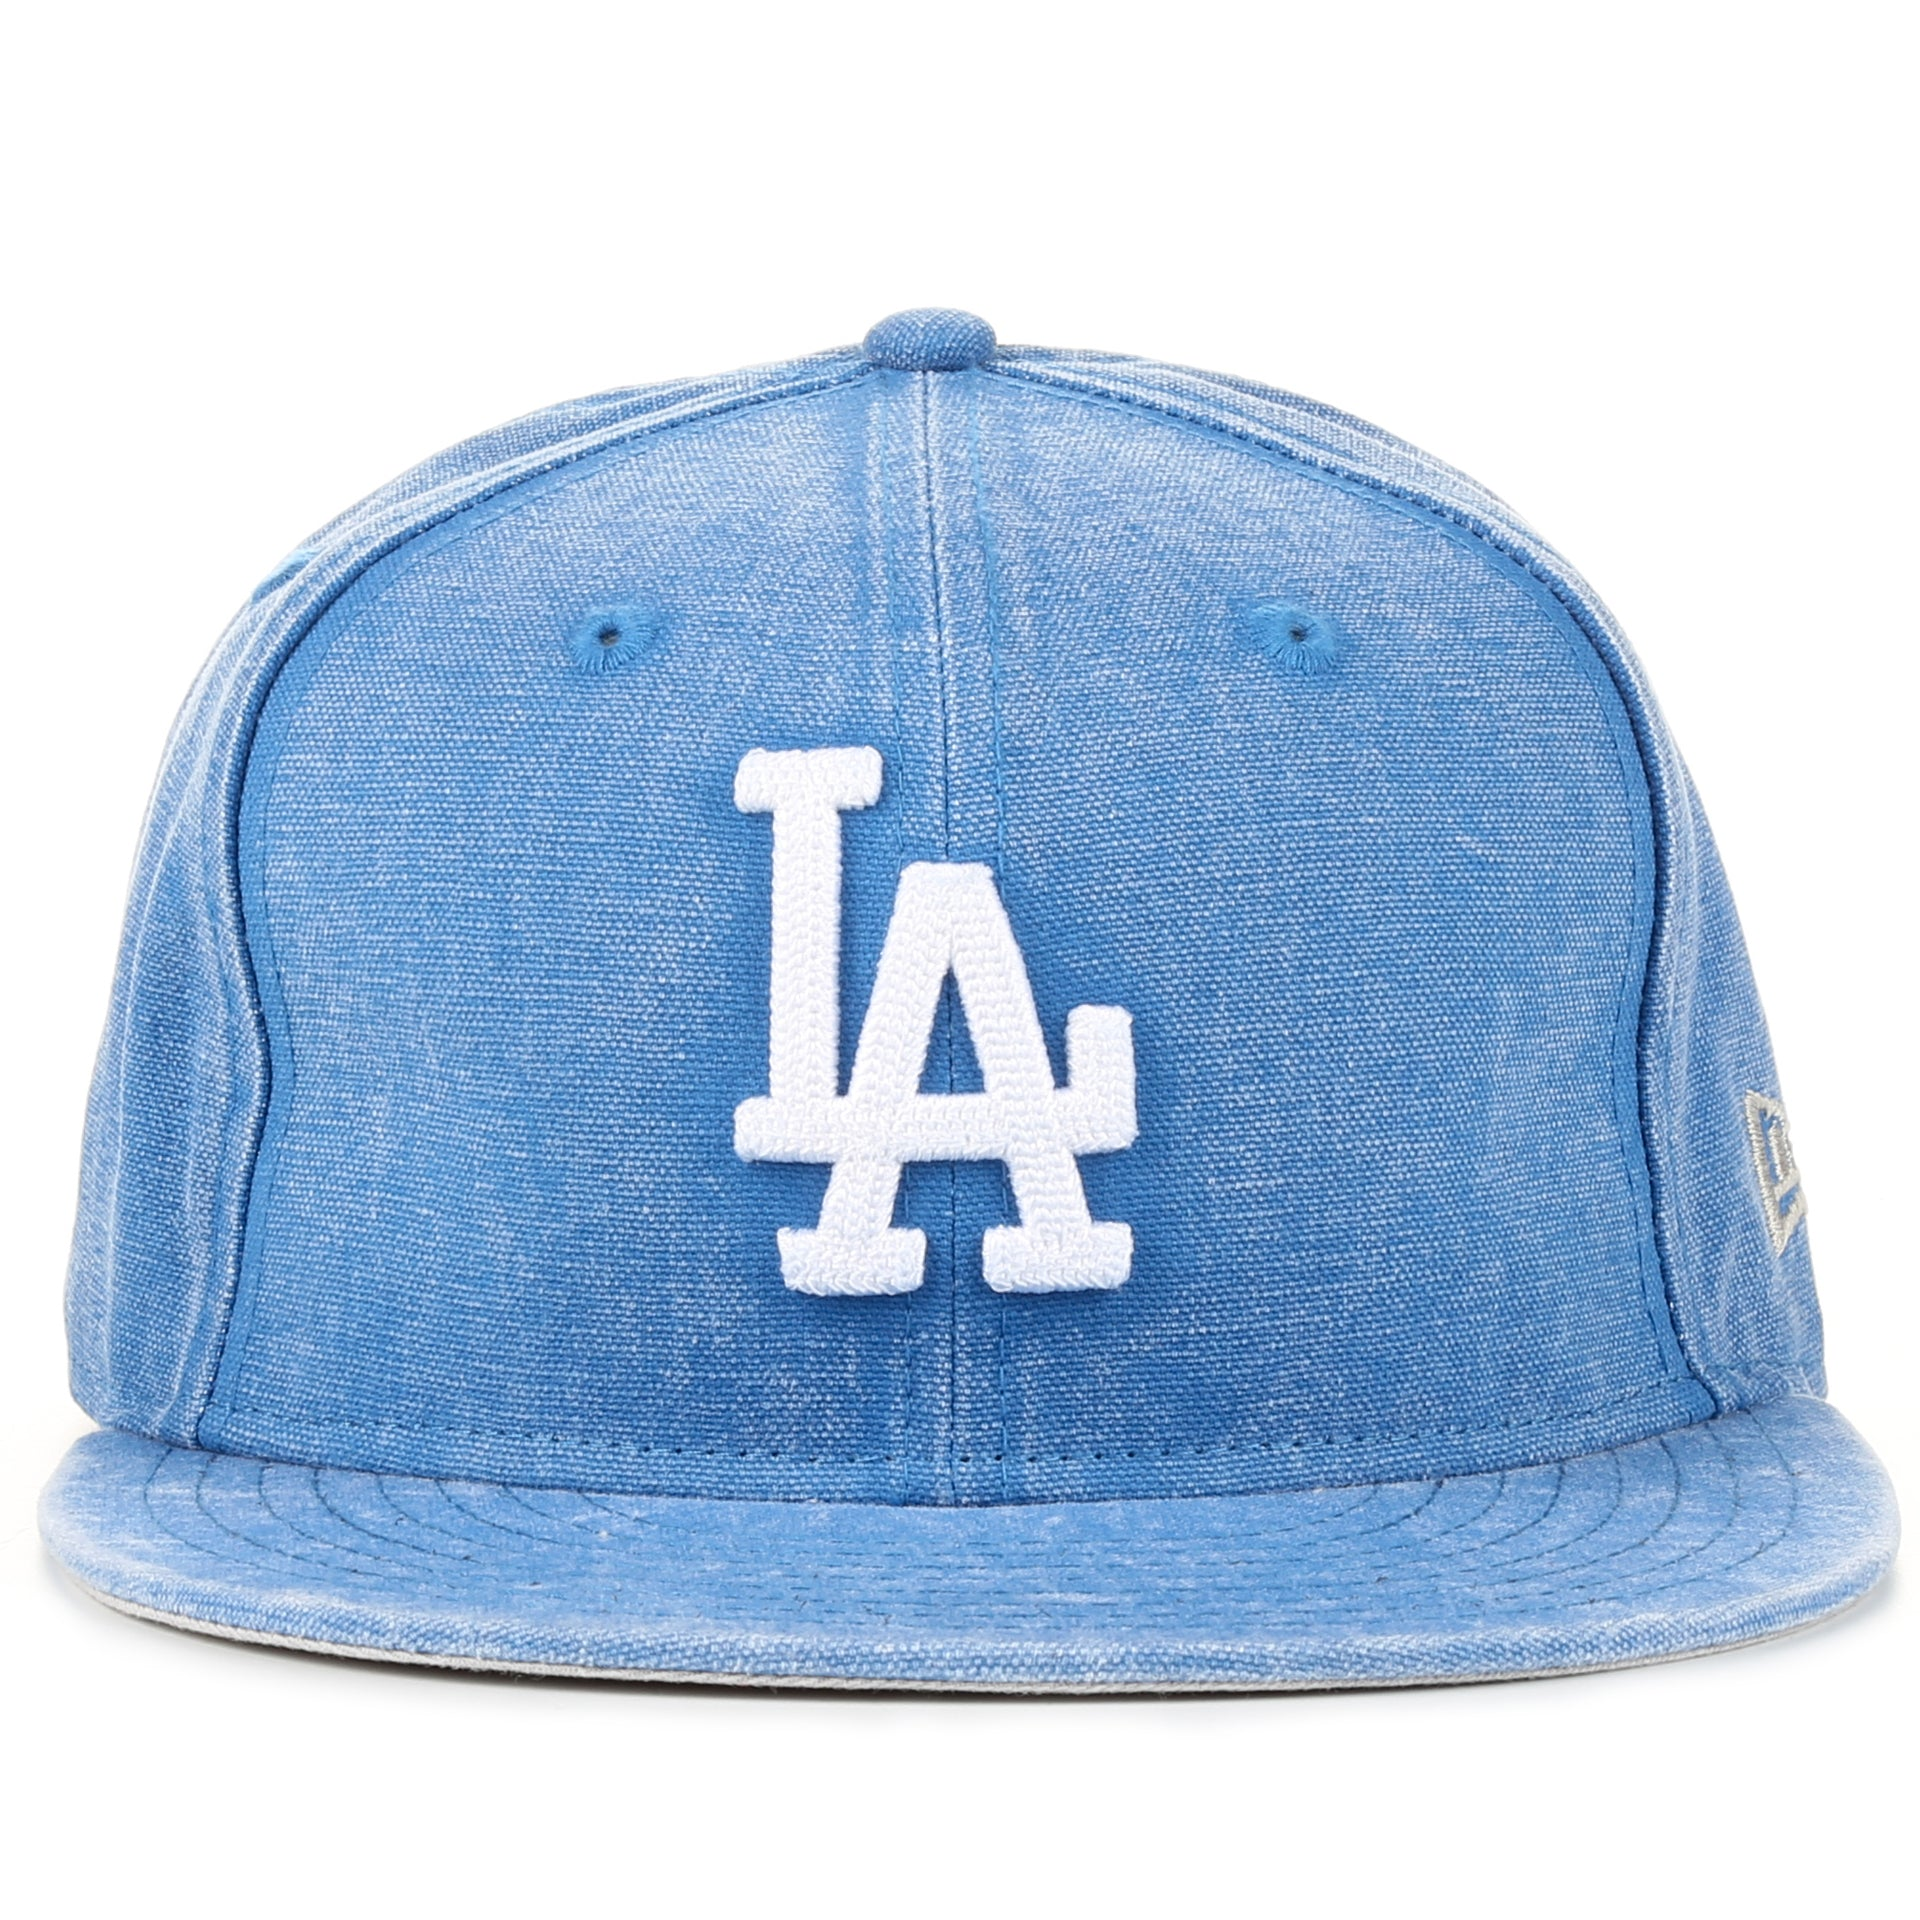 7a09a886d3b236 New Era 9Fifty Washed Over Snapback - Los Angeles Dodgers/Light Denim